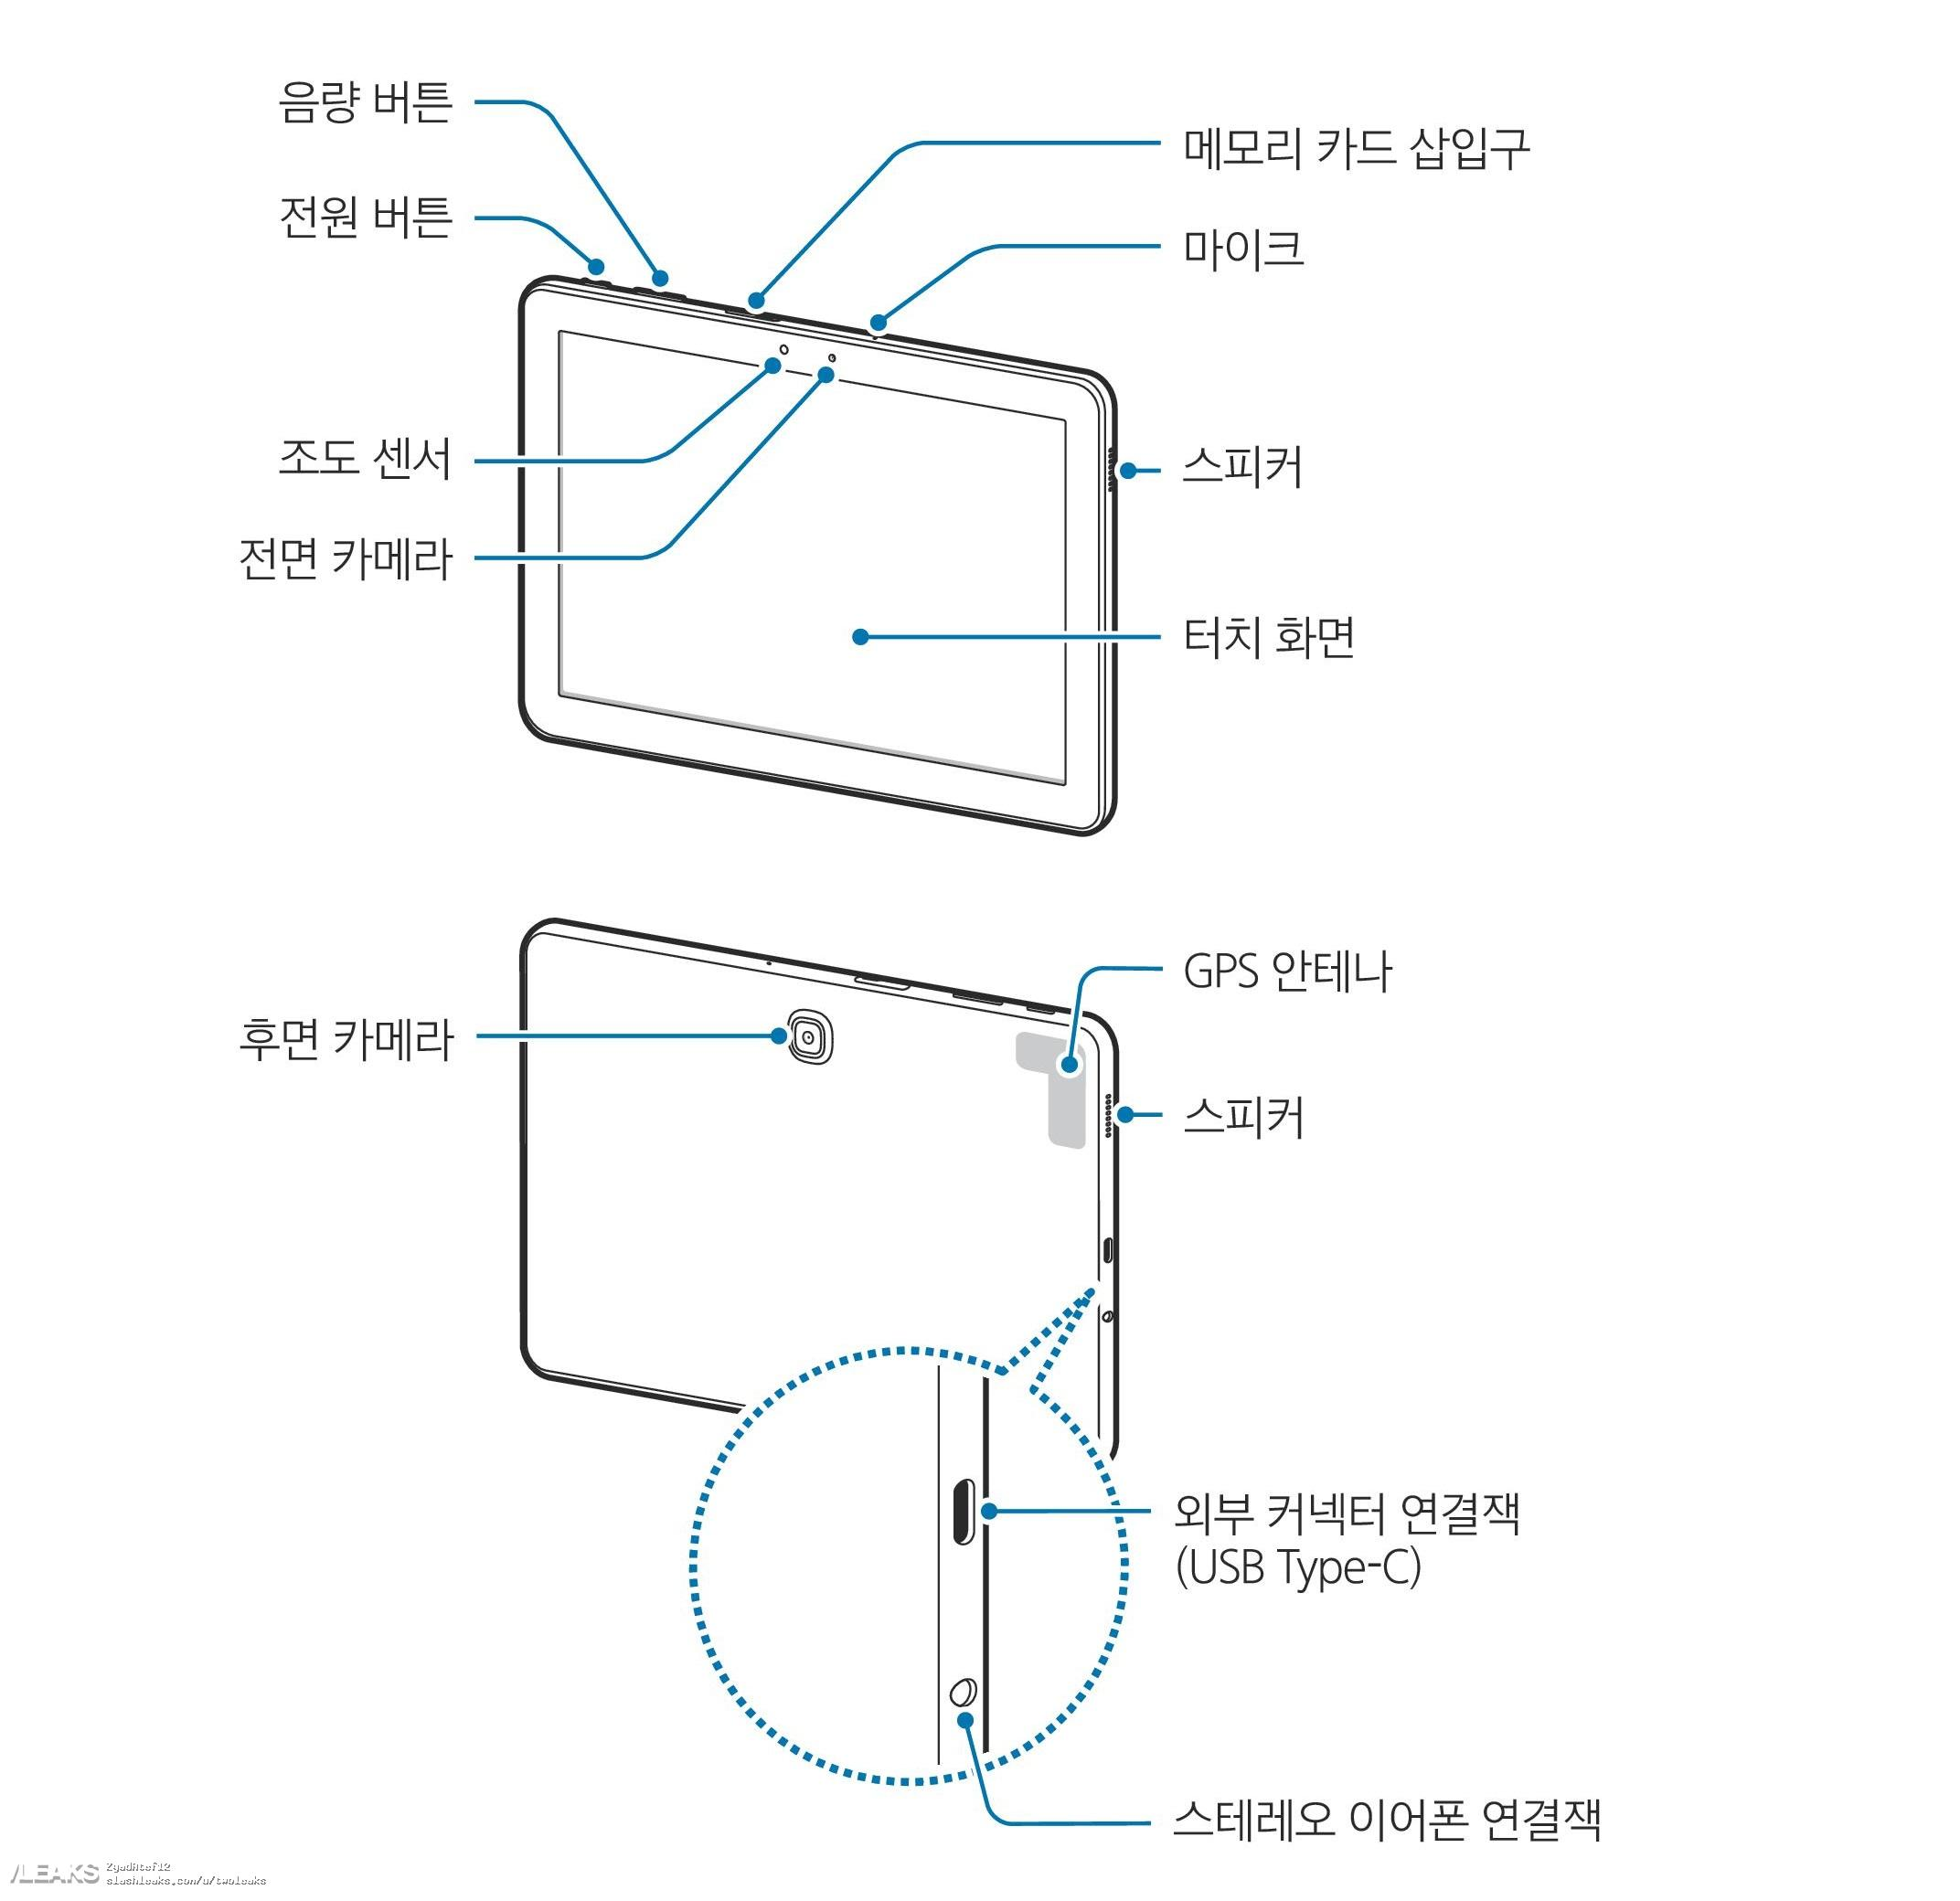 Galaxy Tab Advanced 2 user manual leaks out early « SLASHLEAKS